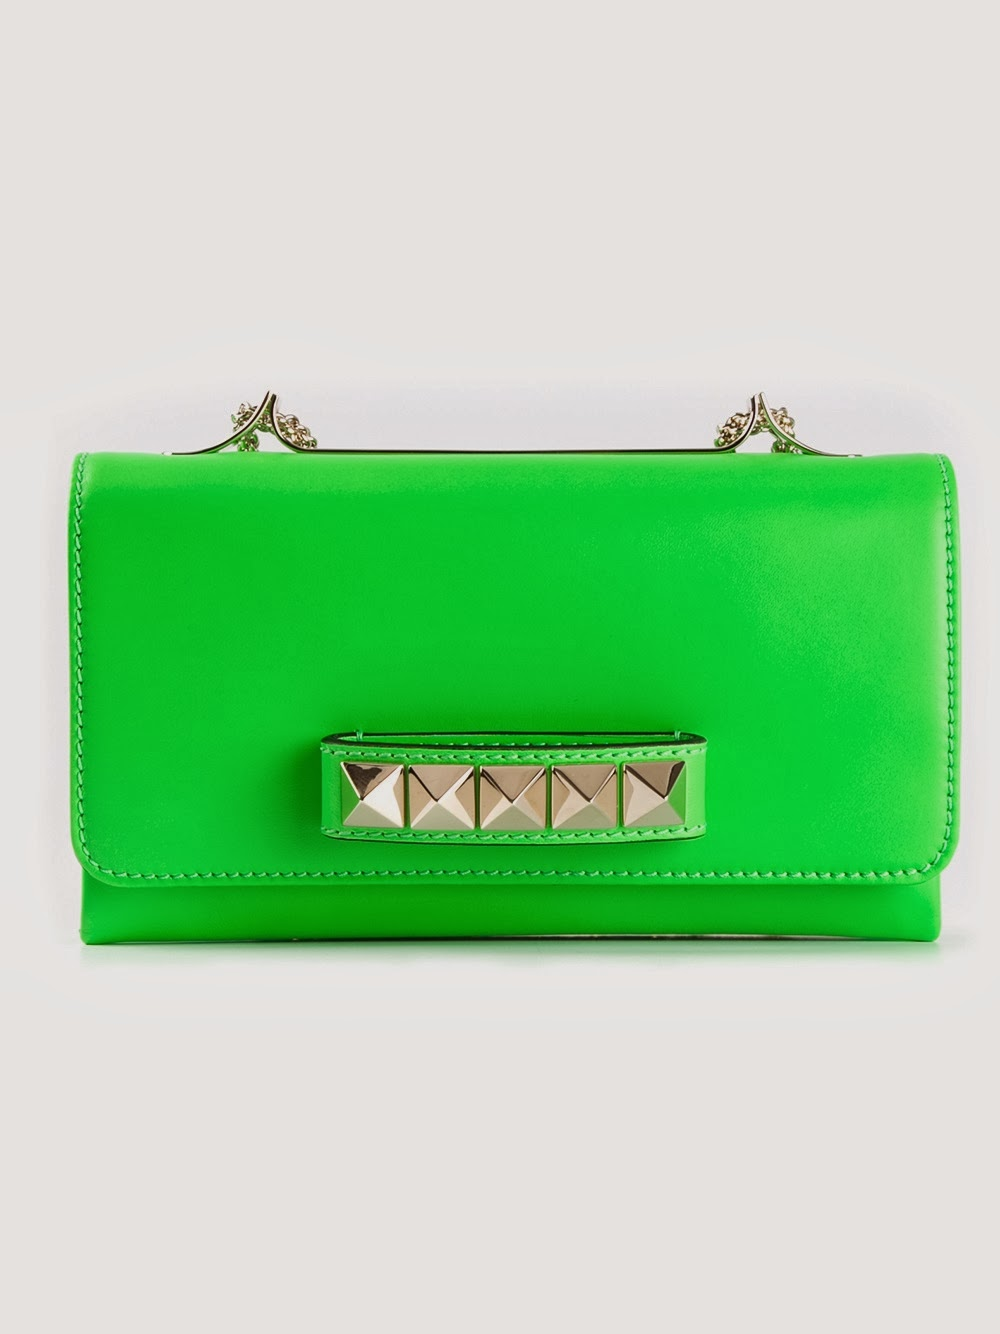 http://www.farfetch.com/shopping/women/534369-designer-valentino-garavani-va-va-voom-shoulder-bag-item-10589838.aspx